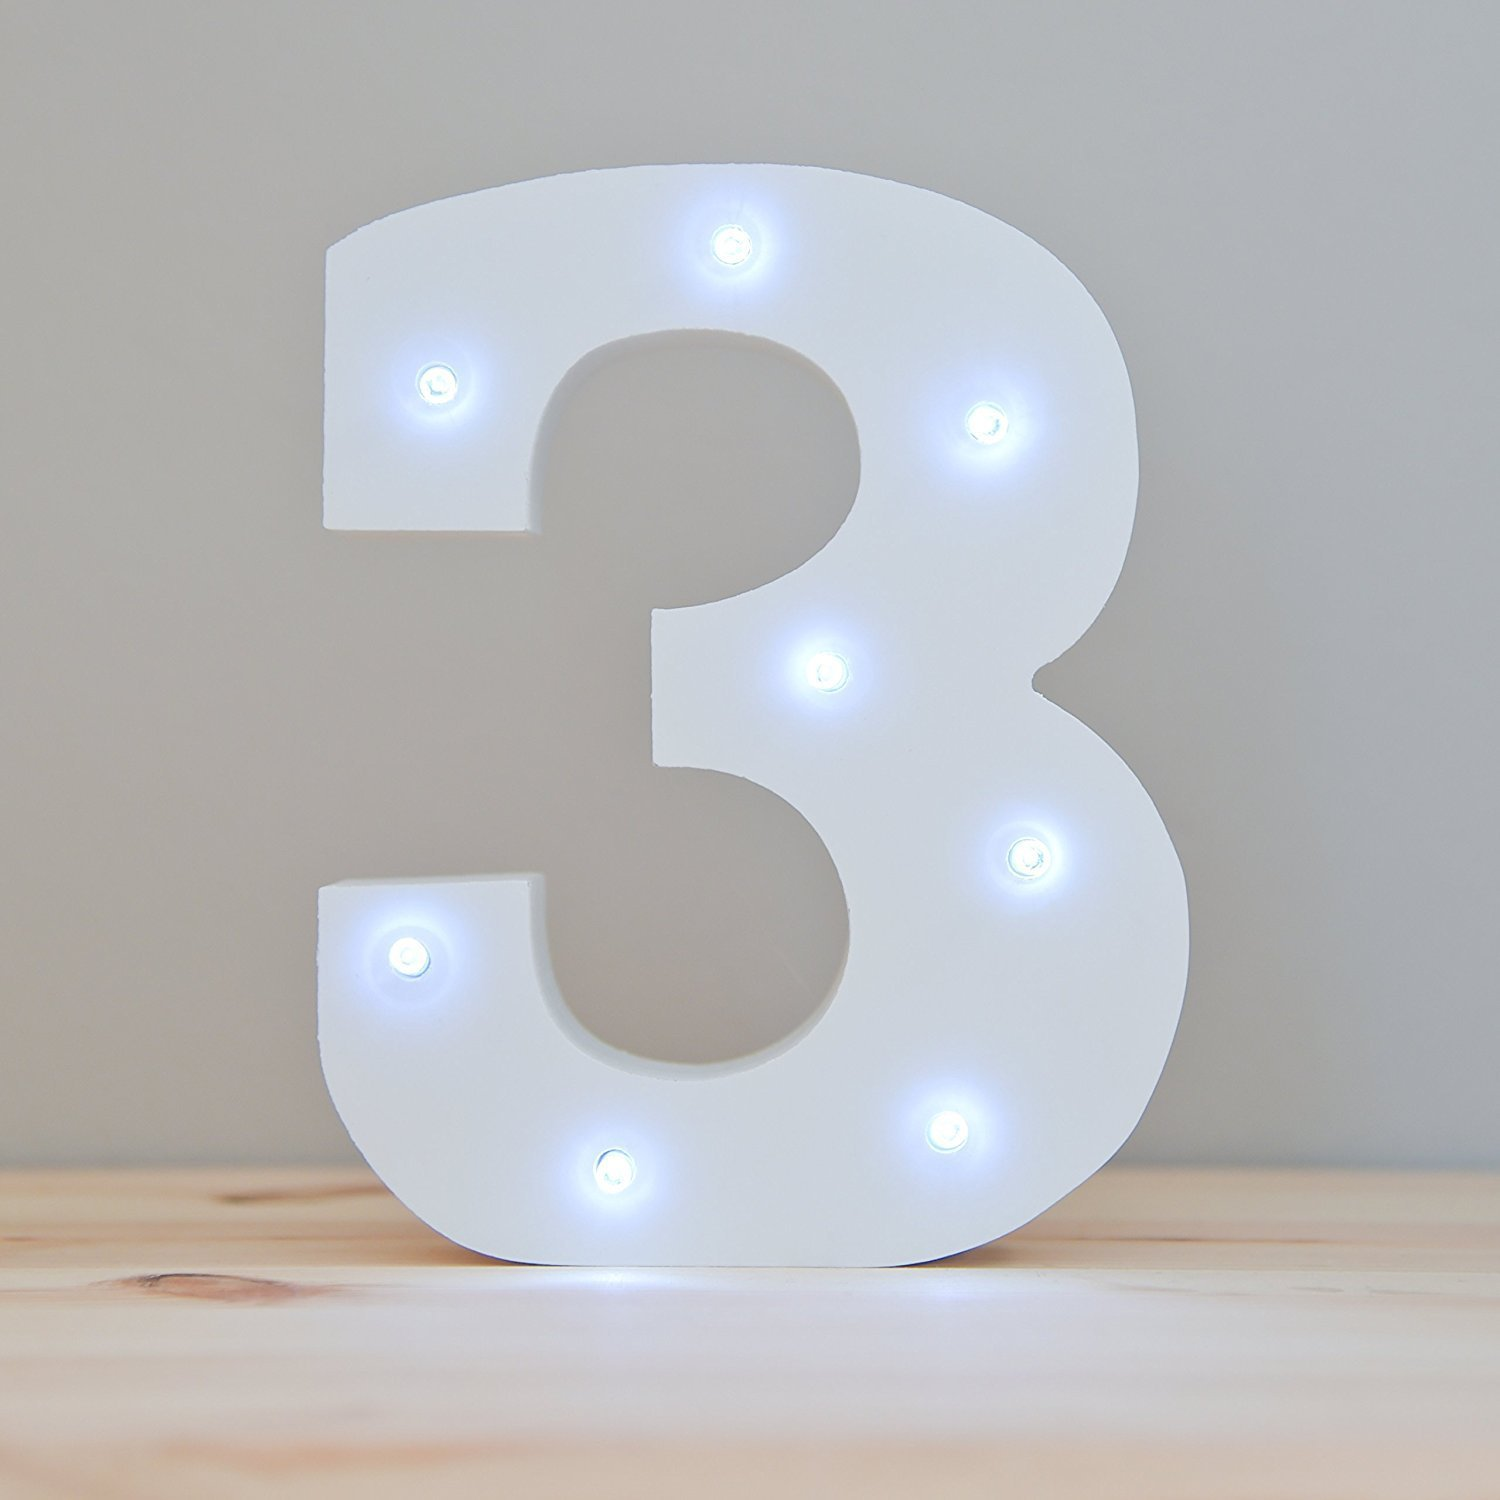 WONFAST Decorative Light Up Wooden Number Letters, White Wood Marquee LED Number Lights Sign Party Wedding Decor Battery Operated Number (3)